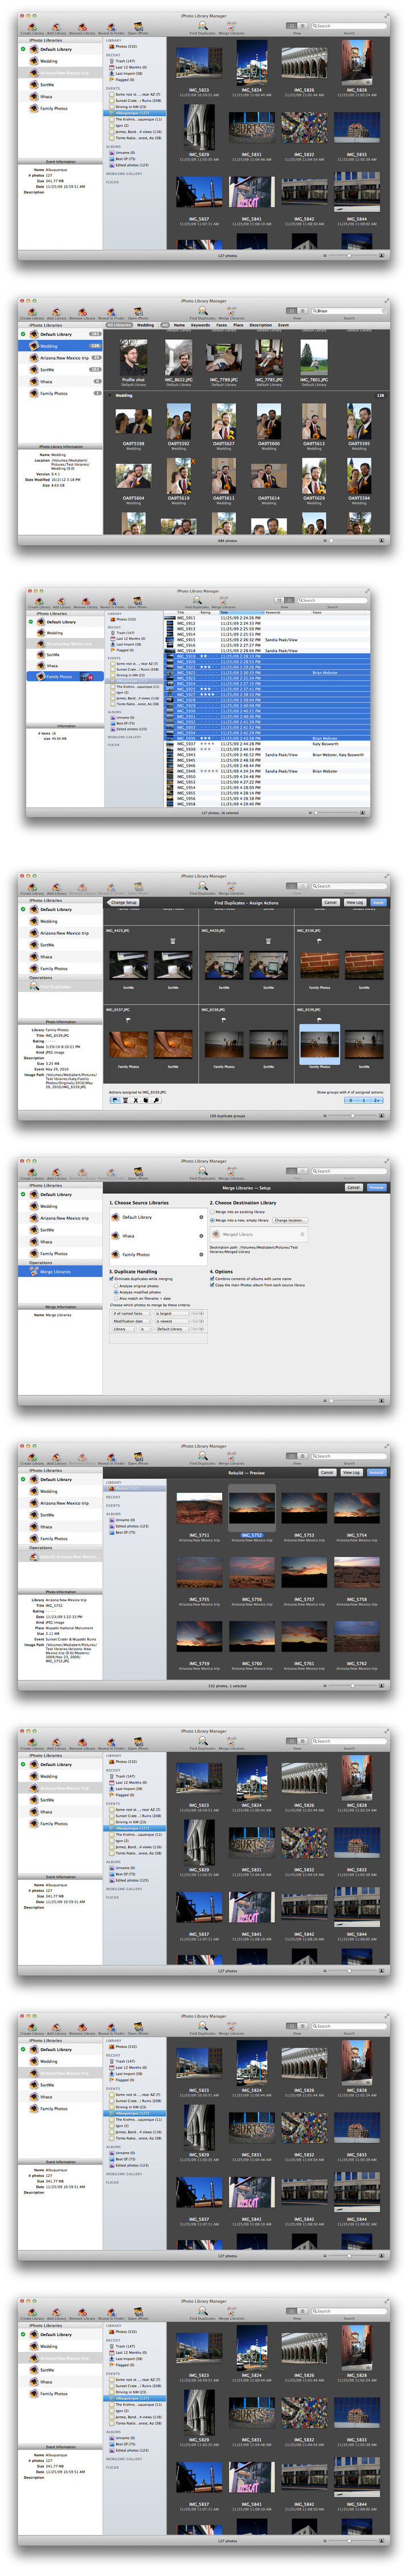 iphoto_library_manager_425